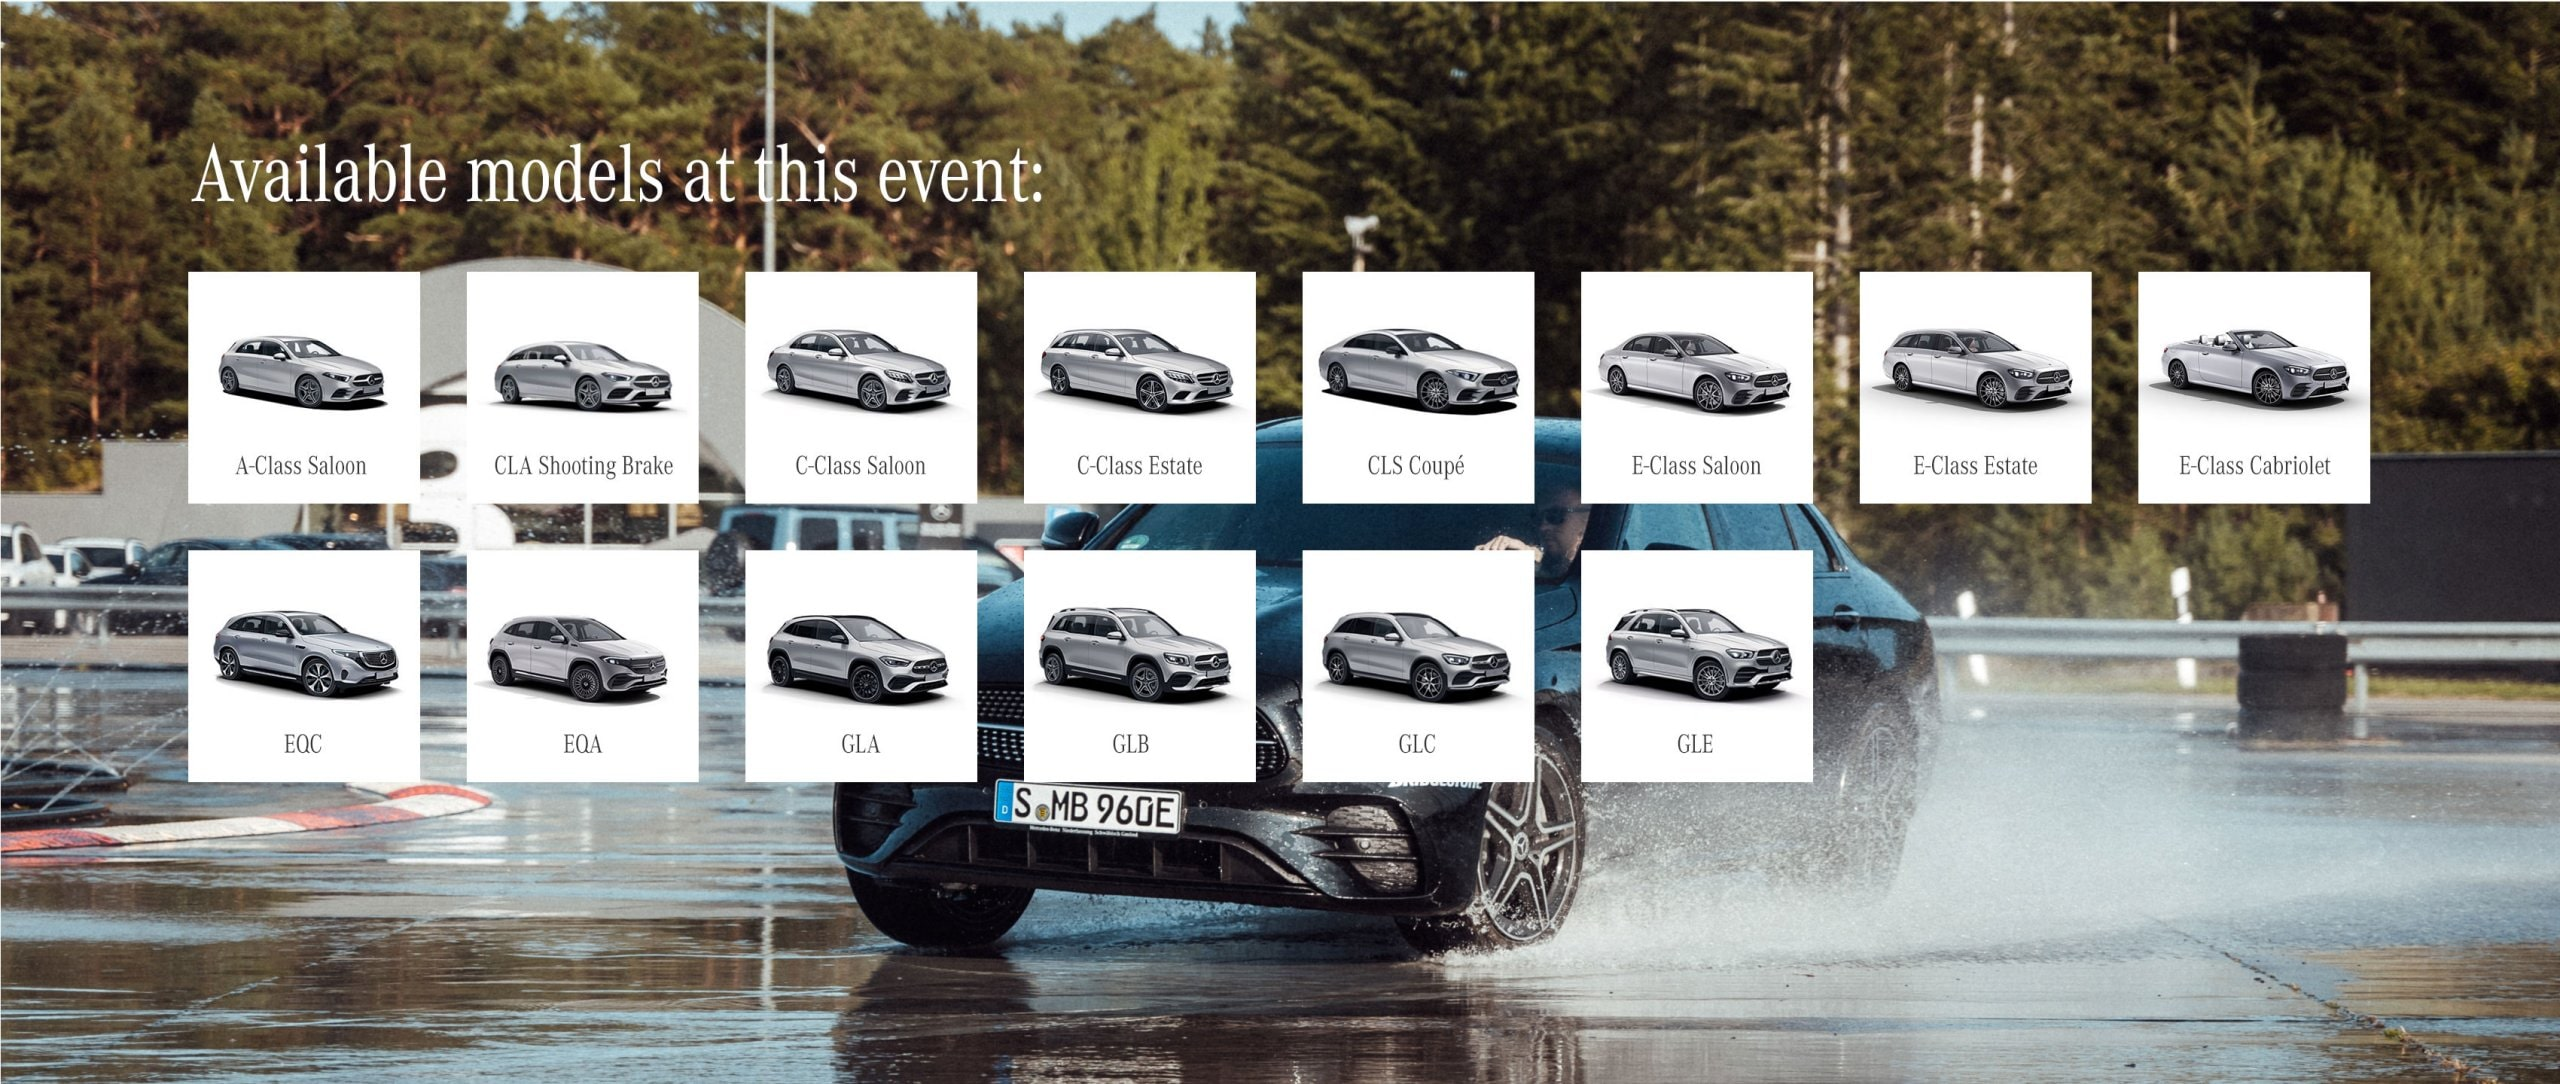 Vehicles provided at this Mercedes-Benz Driving Event.